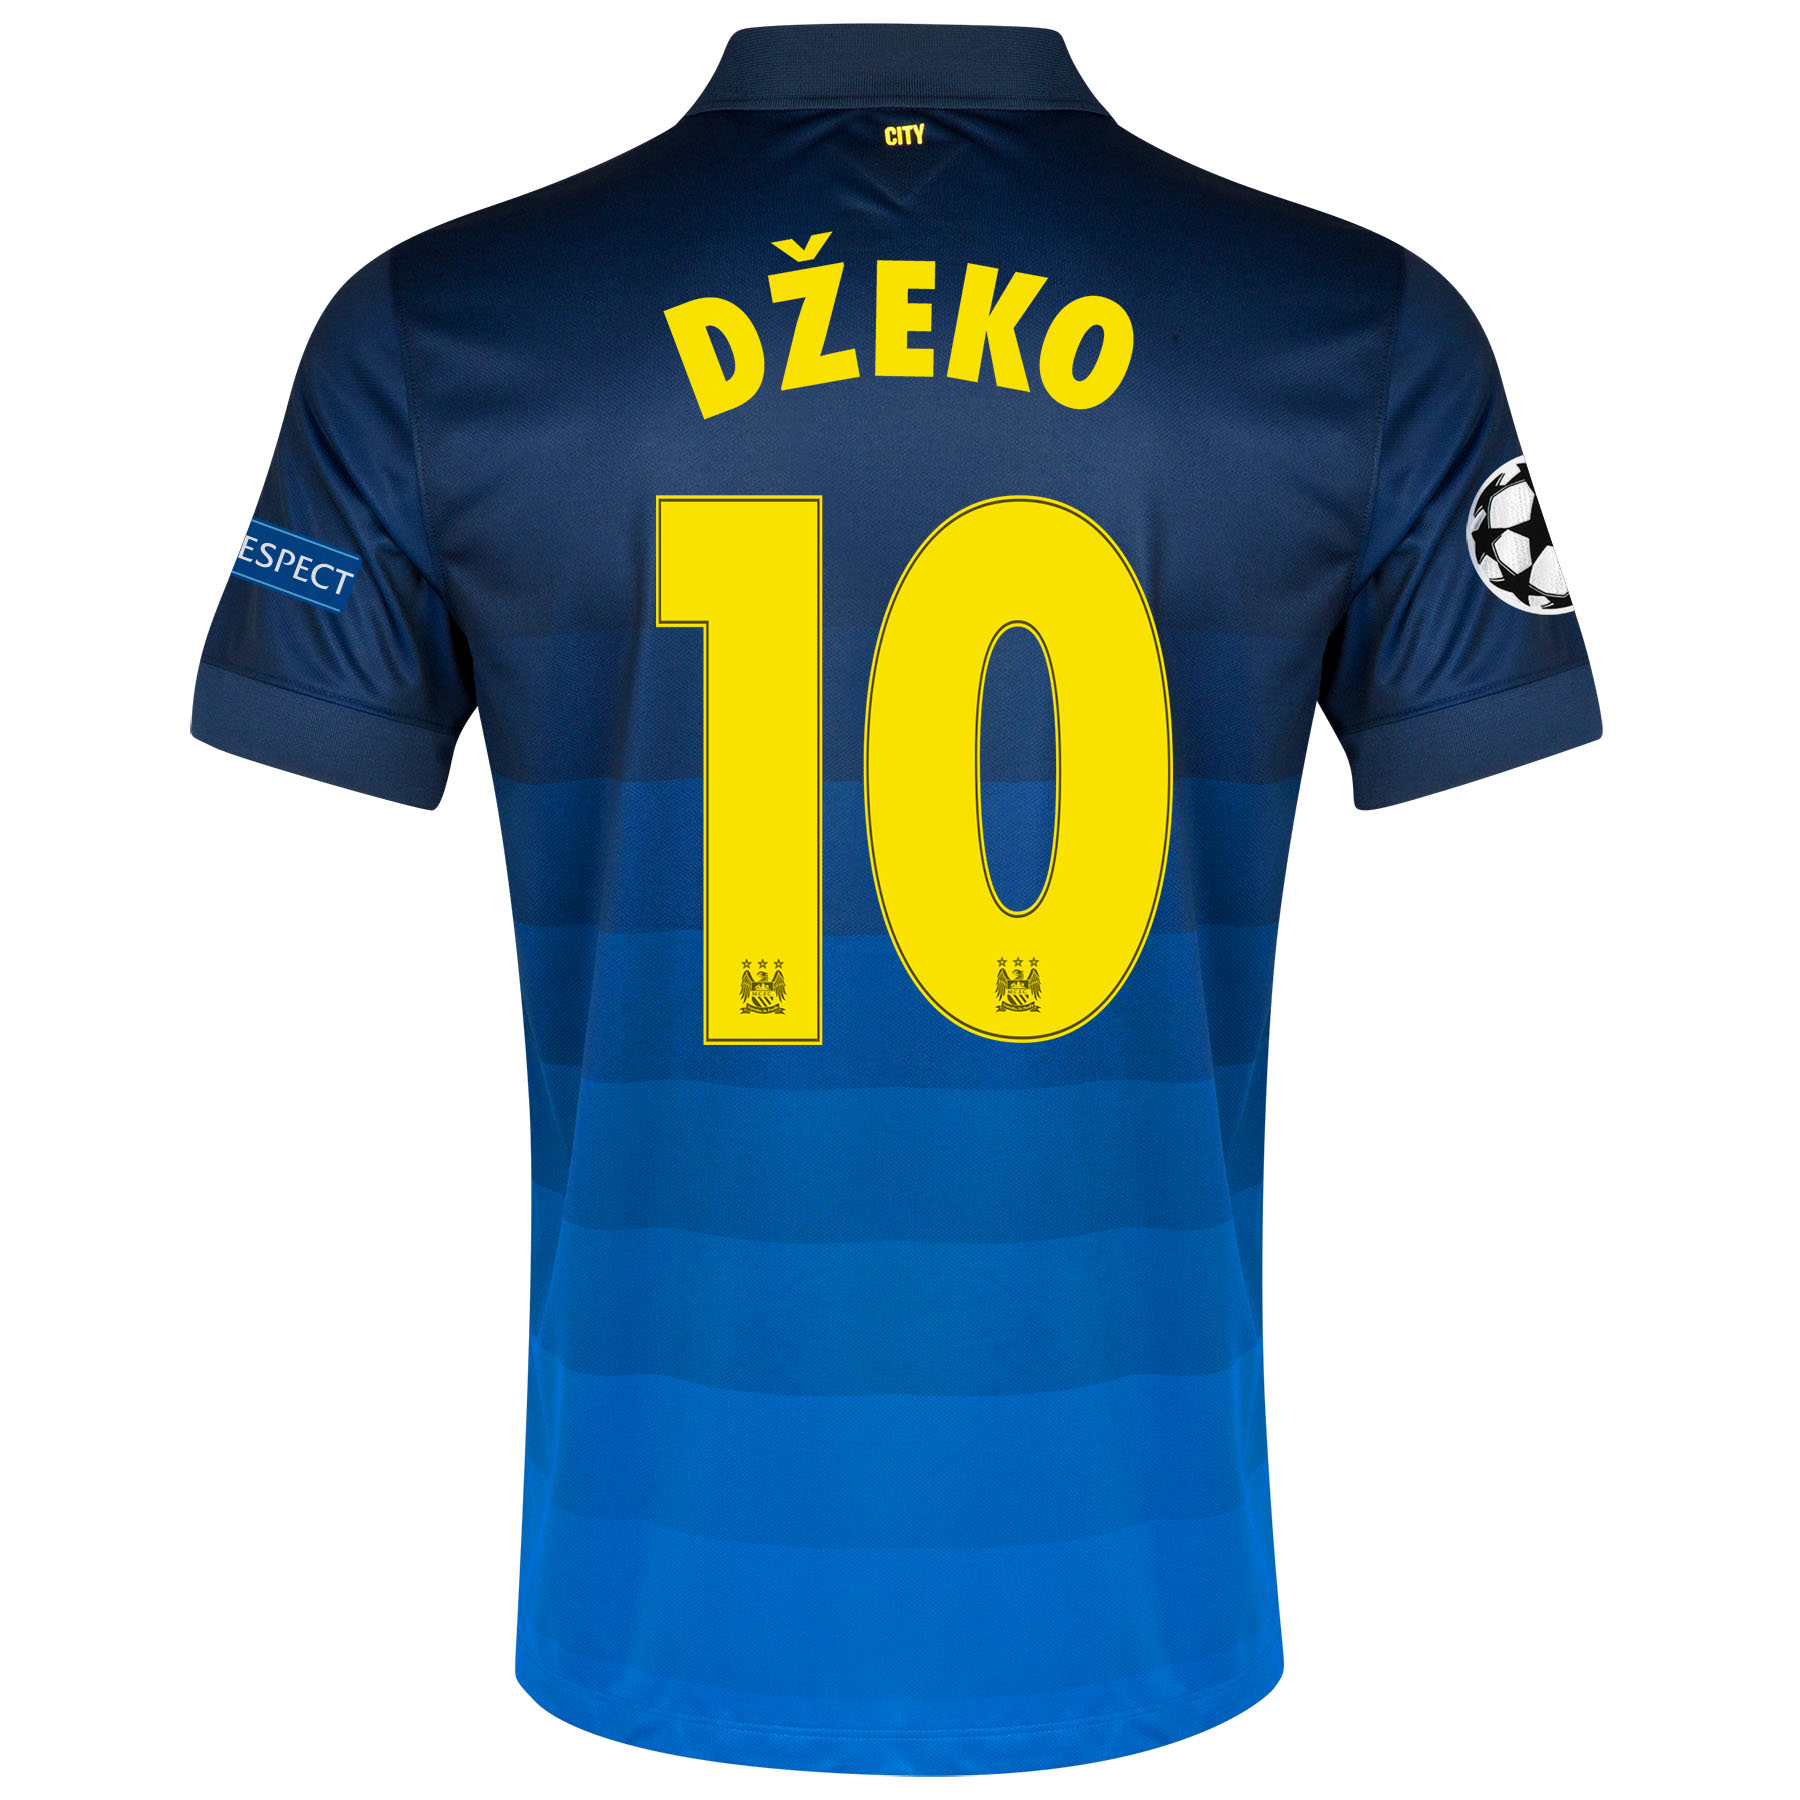 Manchester City UEFA Champions League Away Shirt 2014/15 with Dzeko 10 printing